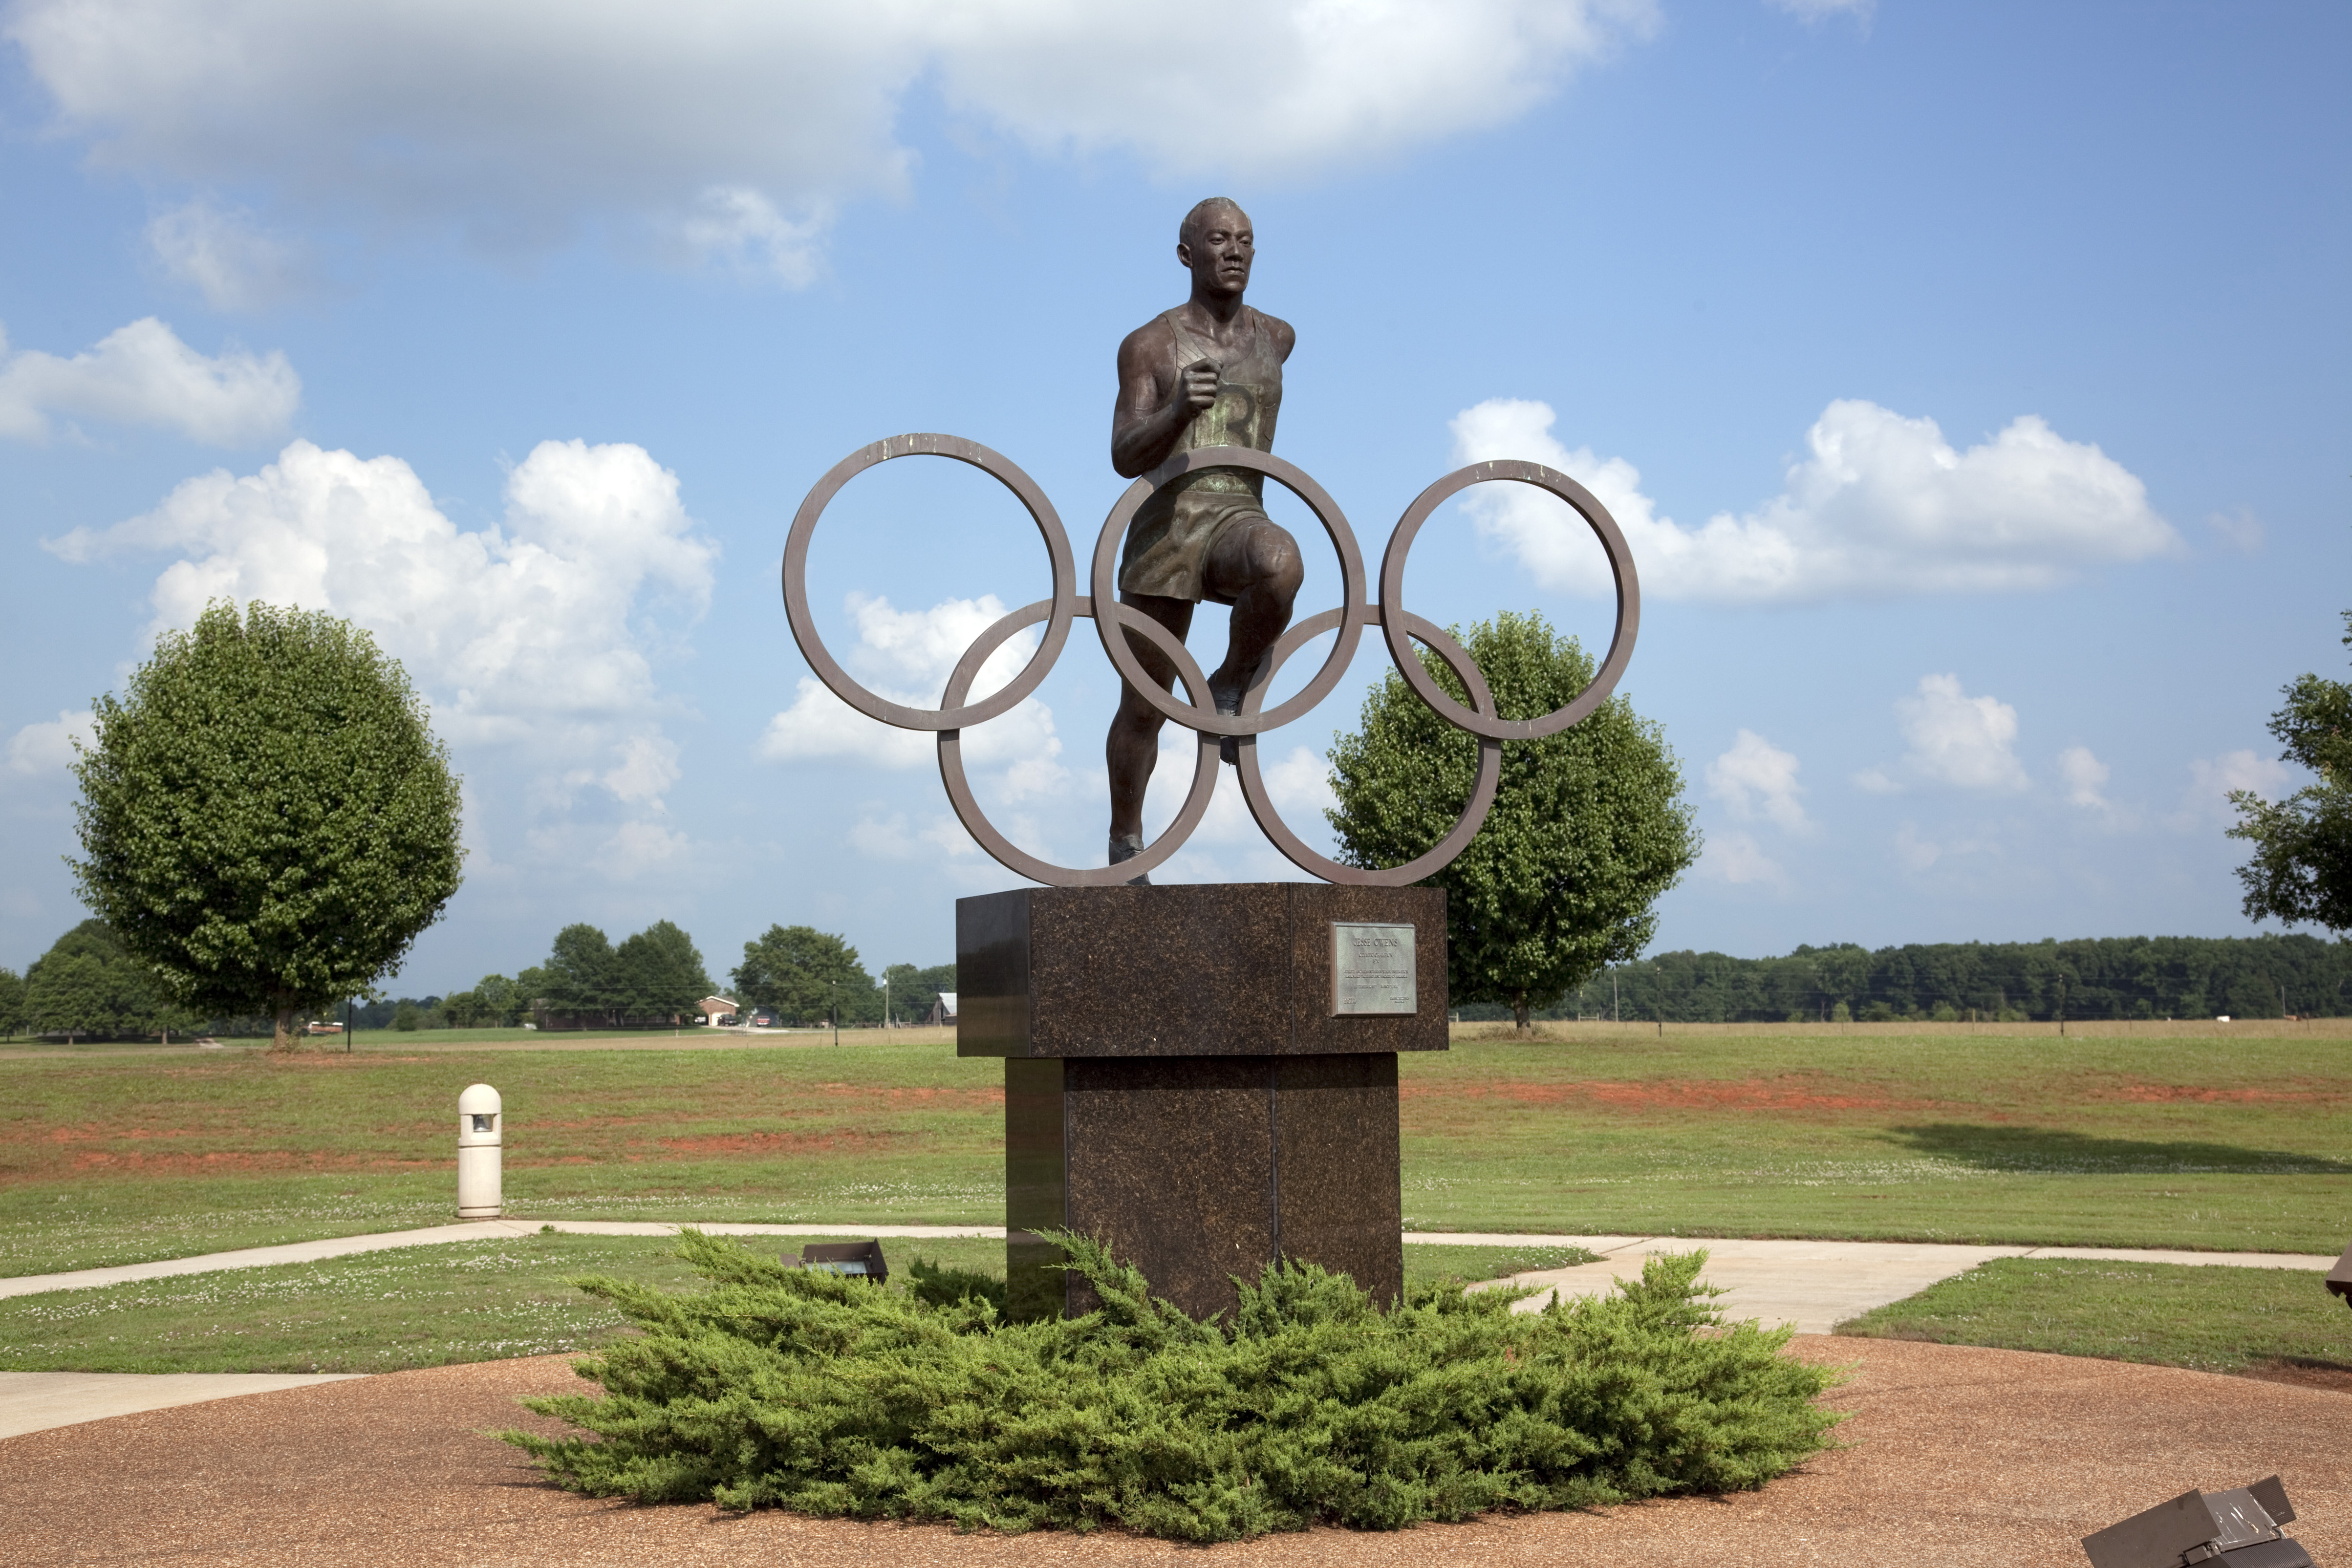 10 Things You May Not Know About Jesse Owens